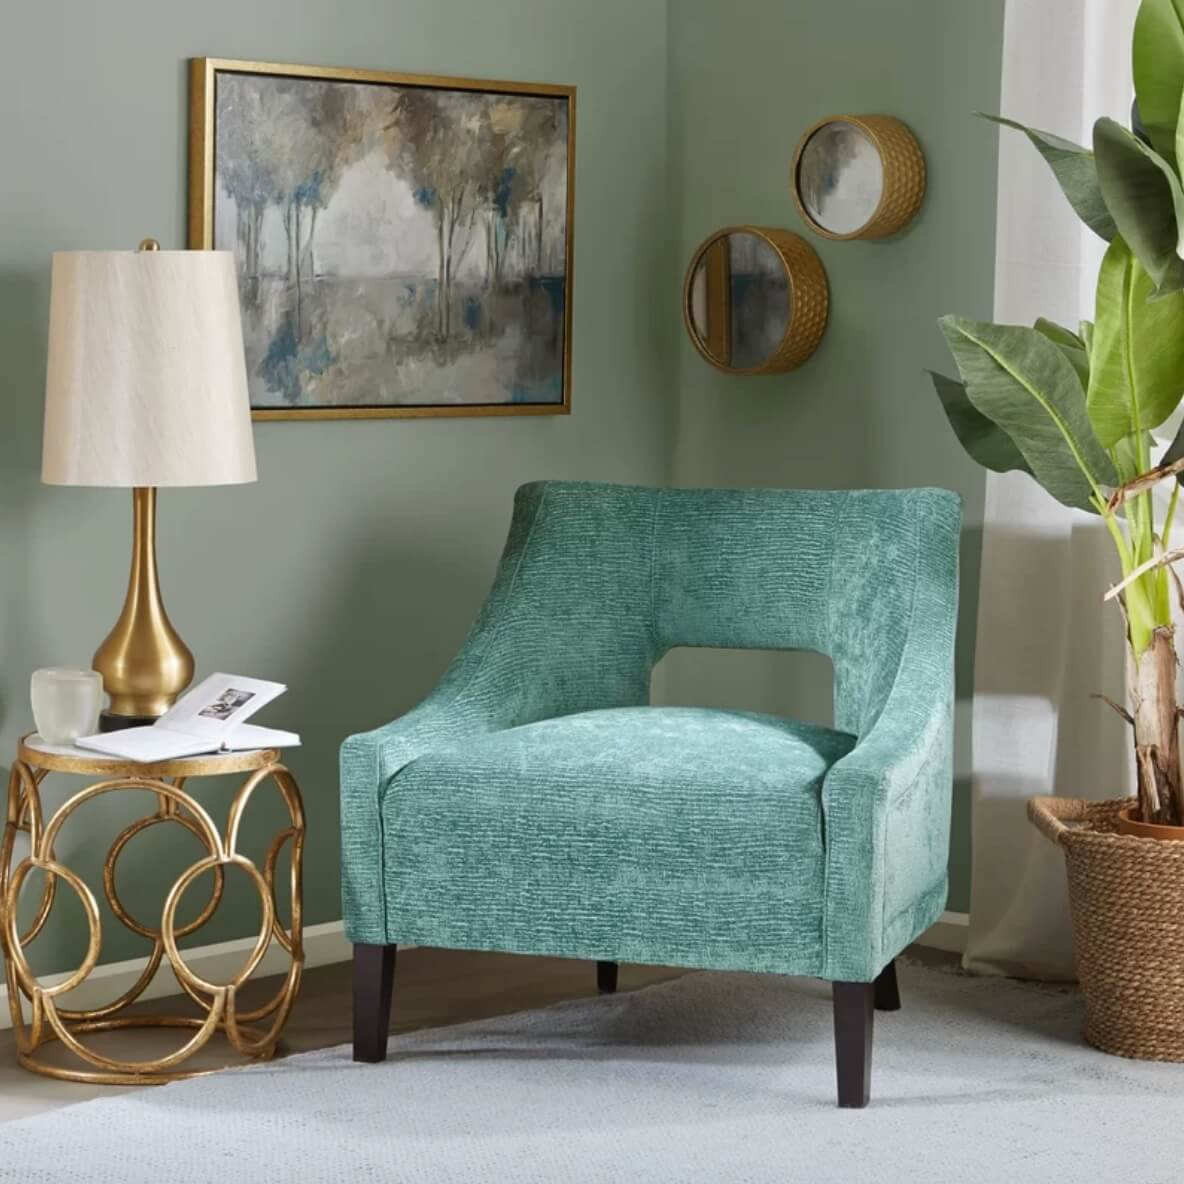 Slate Couch And Blue Accent Chair In Living Room: Color Knockout: 20 Accent Chairs That Will Rock Your World